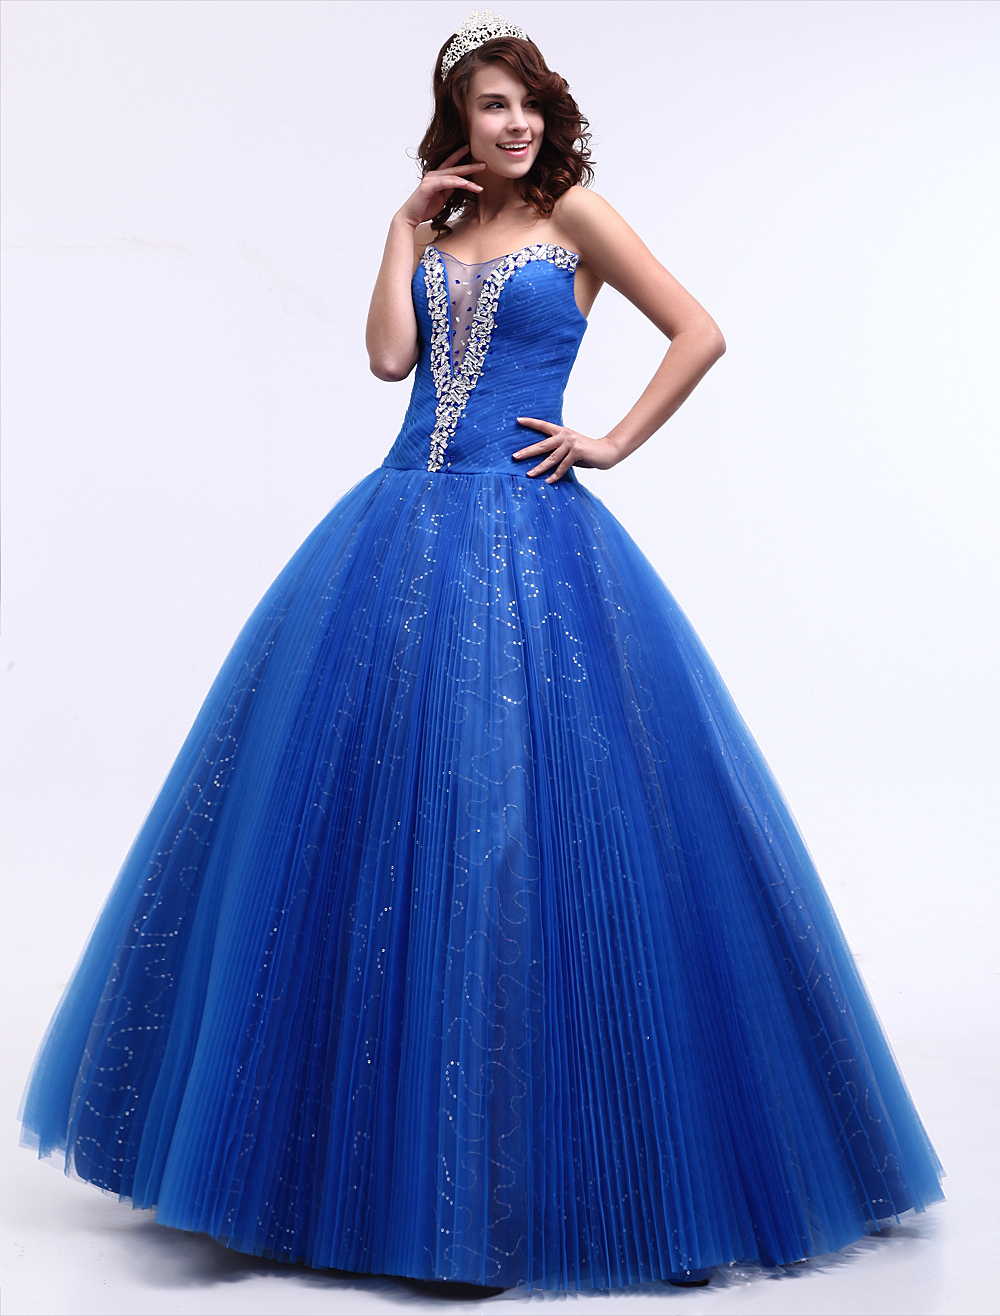 Blue Wedding Dress Sweetheart Floor-Length Ball Gown Princess Bridal Gown Sequin Pageant Dress Milanoo